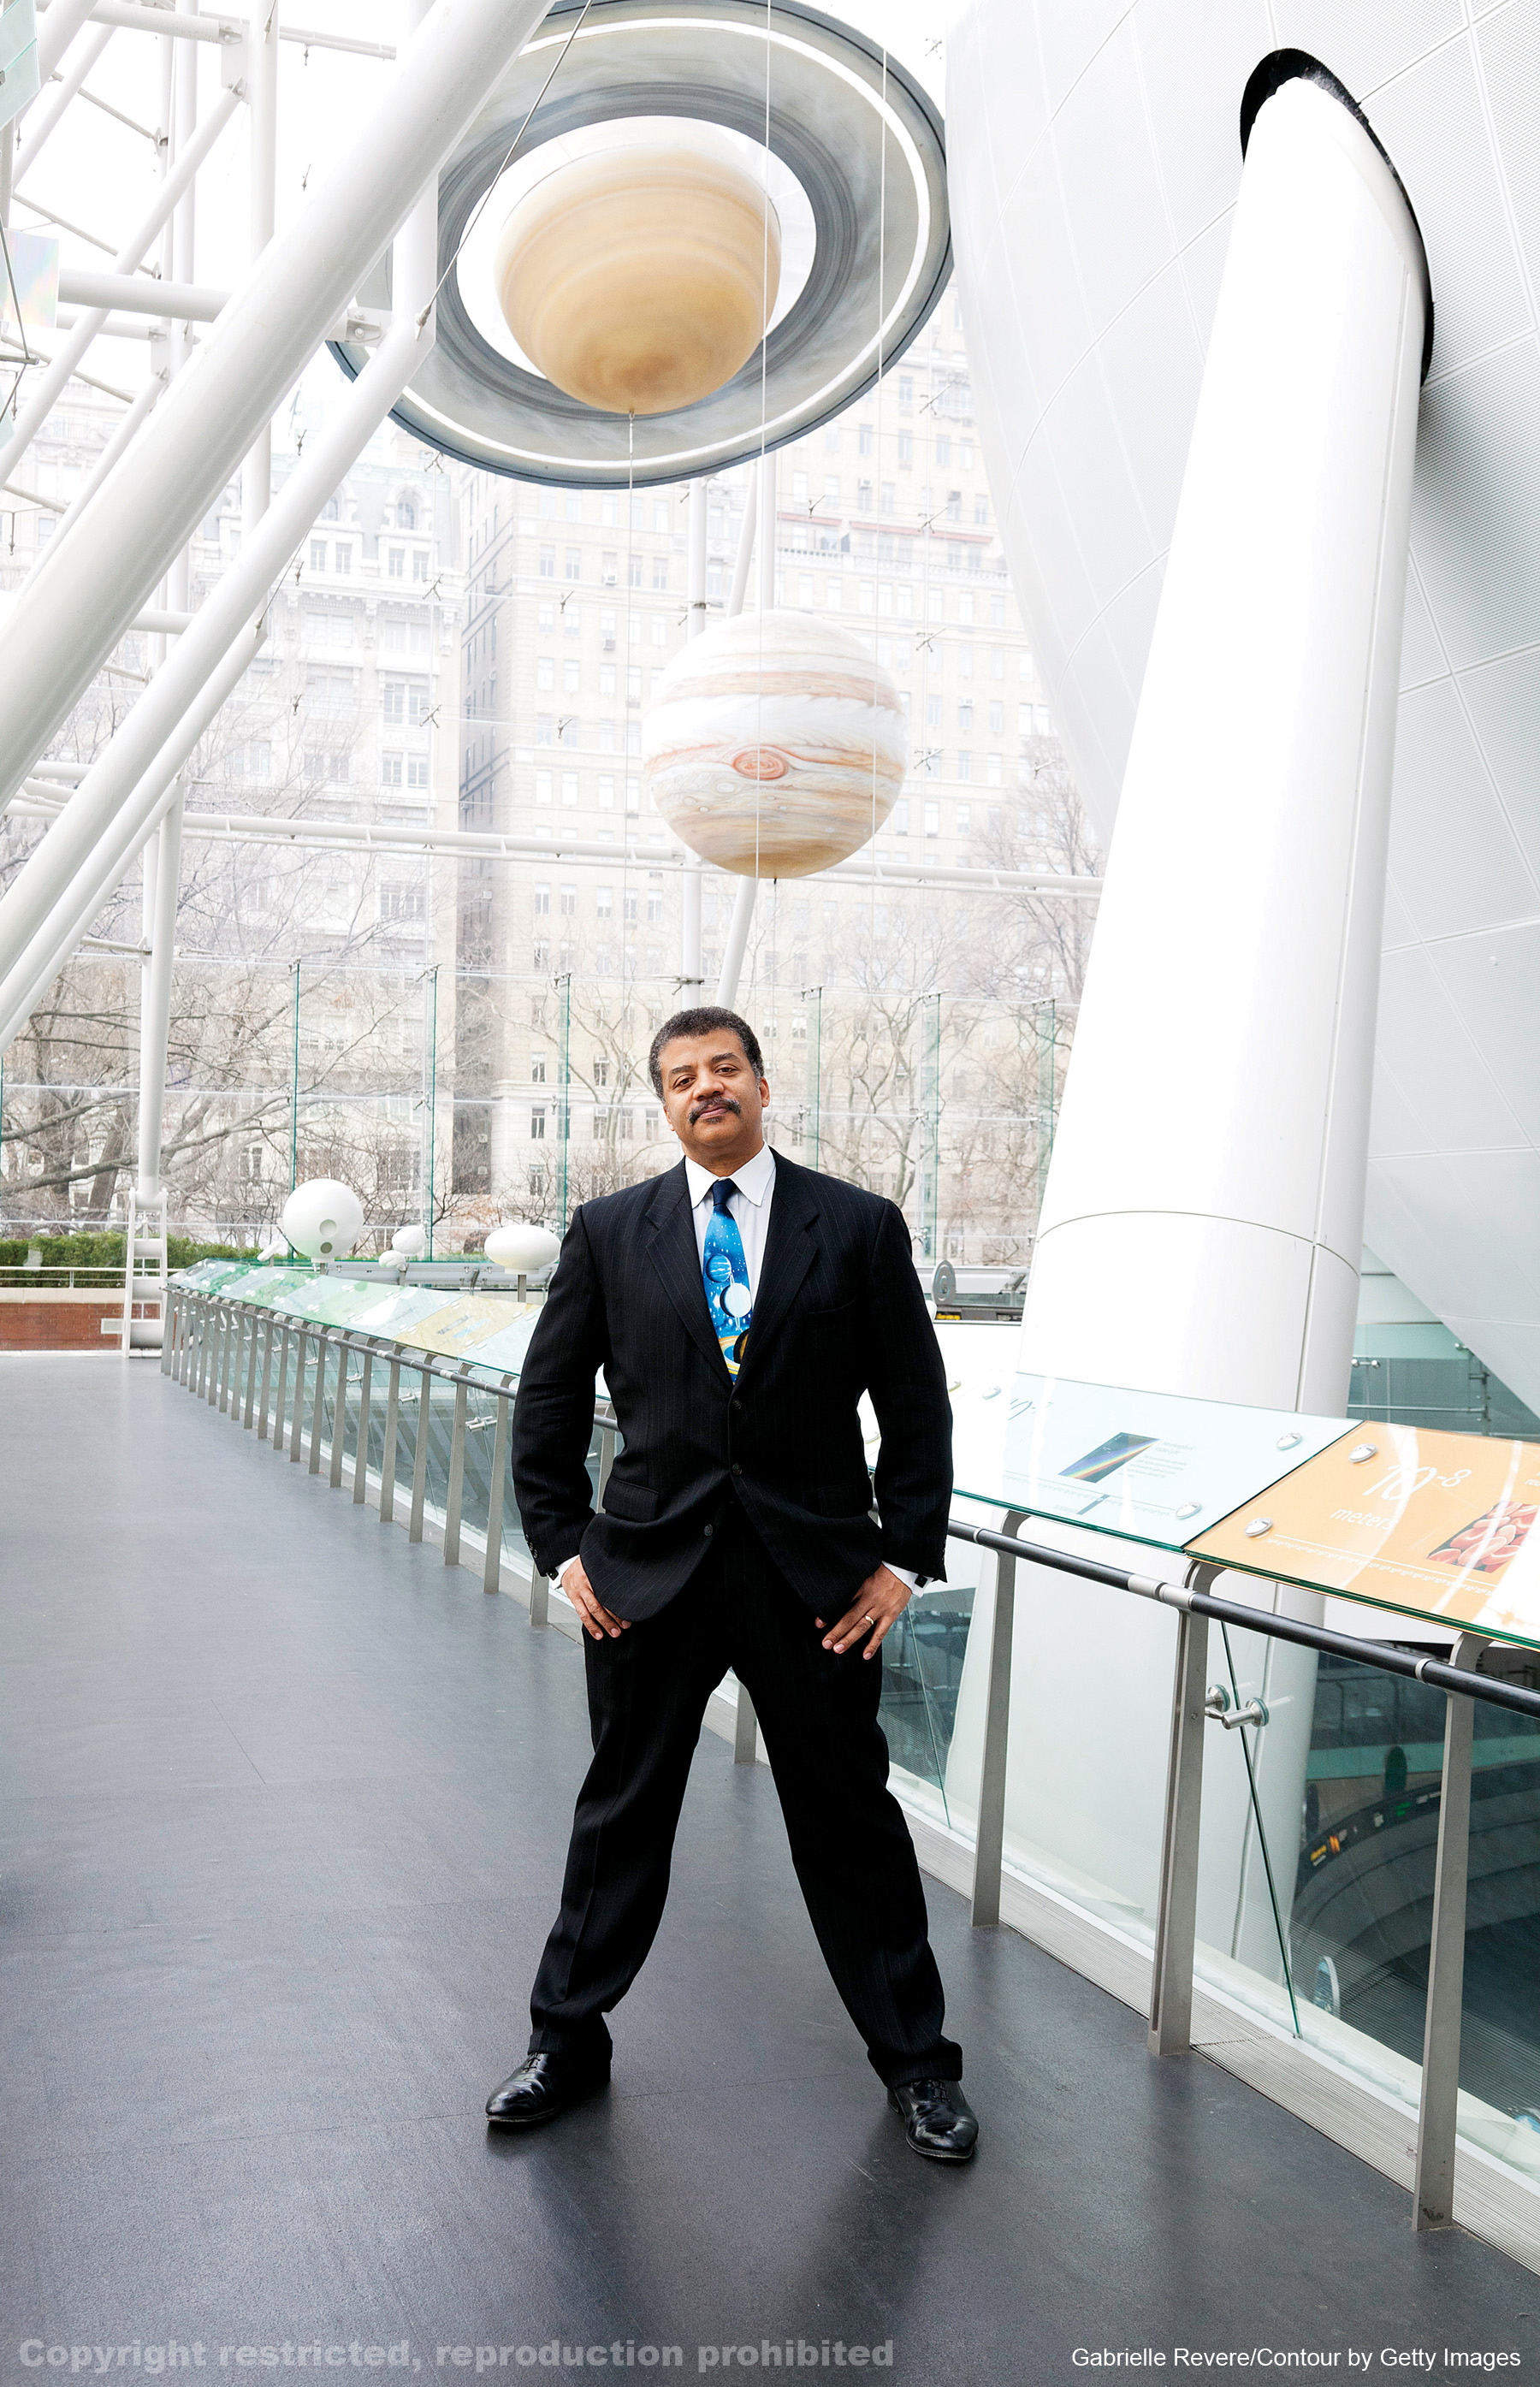 Neil deGrasse Tyson, Director of the Hayden Planetarium